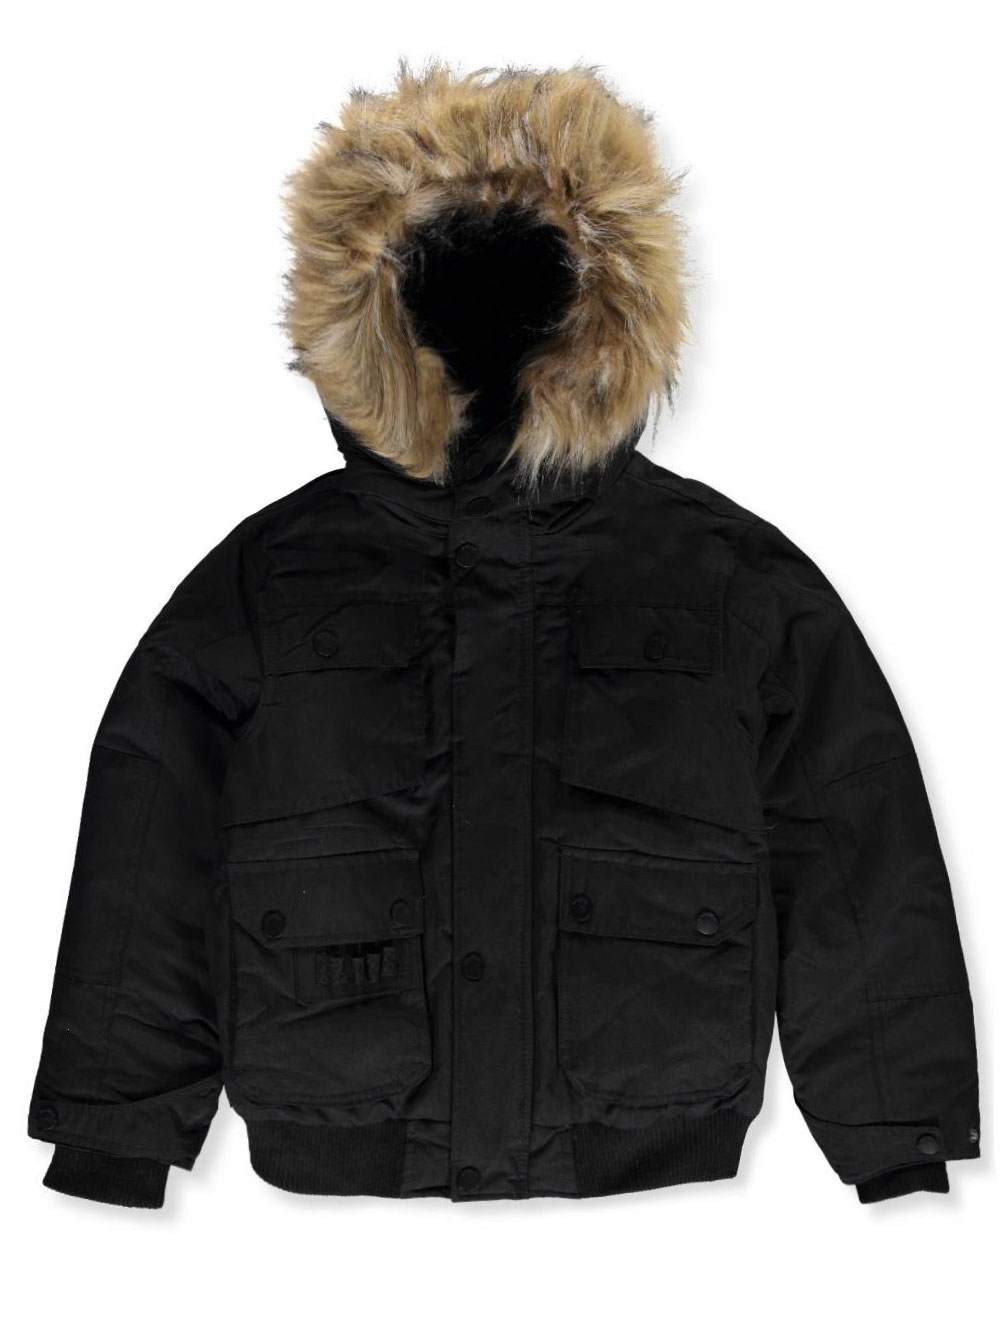 Boys Black Jackets Coats